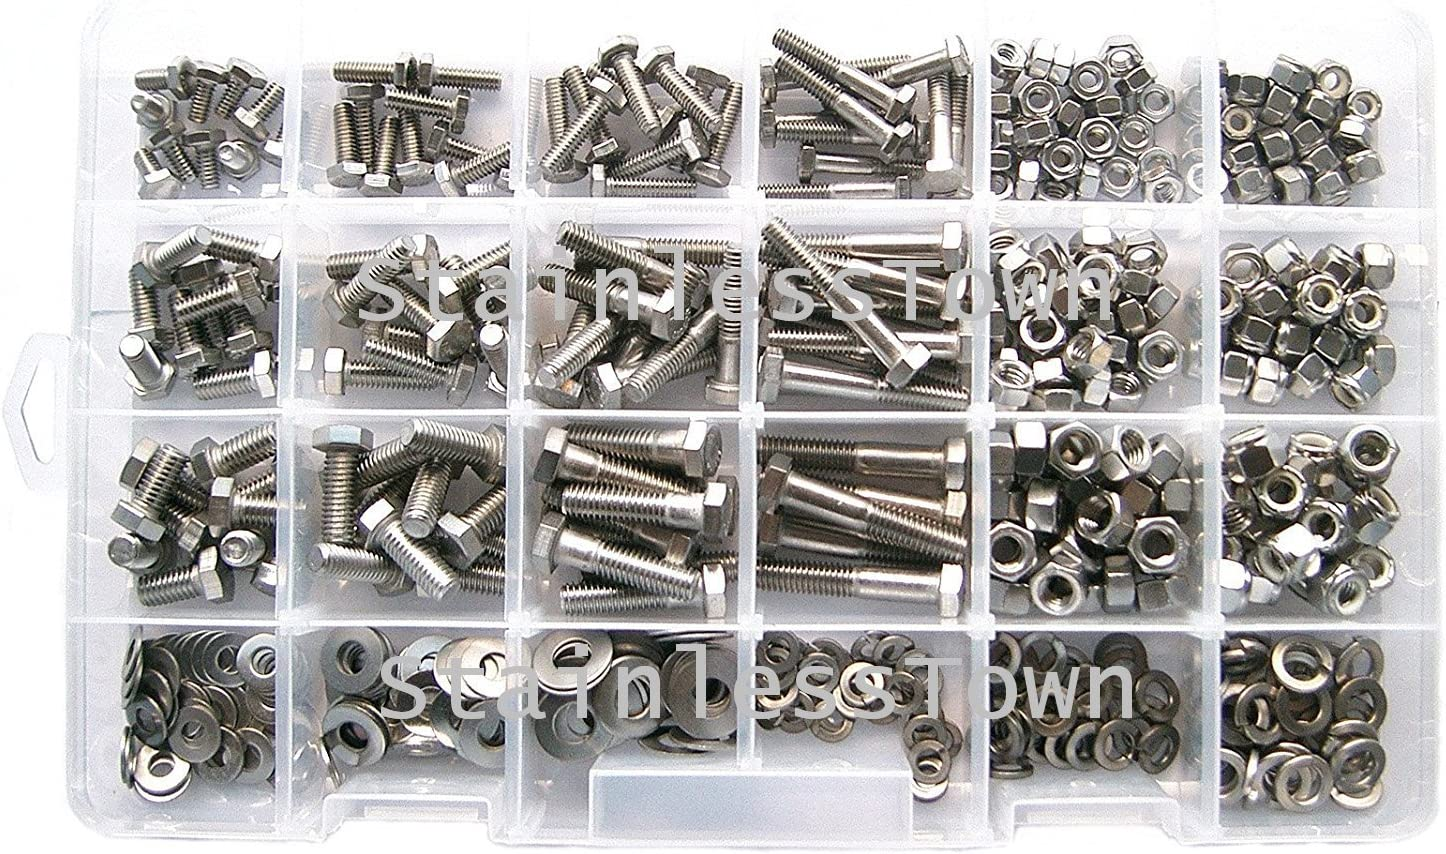 StainlessTown Stainless Steel Master Hex Head Bolt Assortment 18-8 with Free Size Gauge